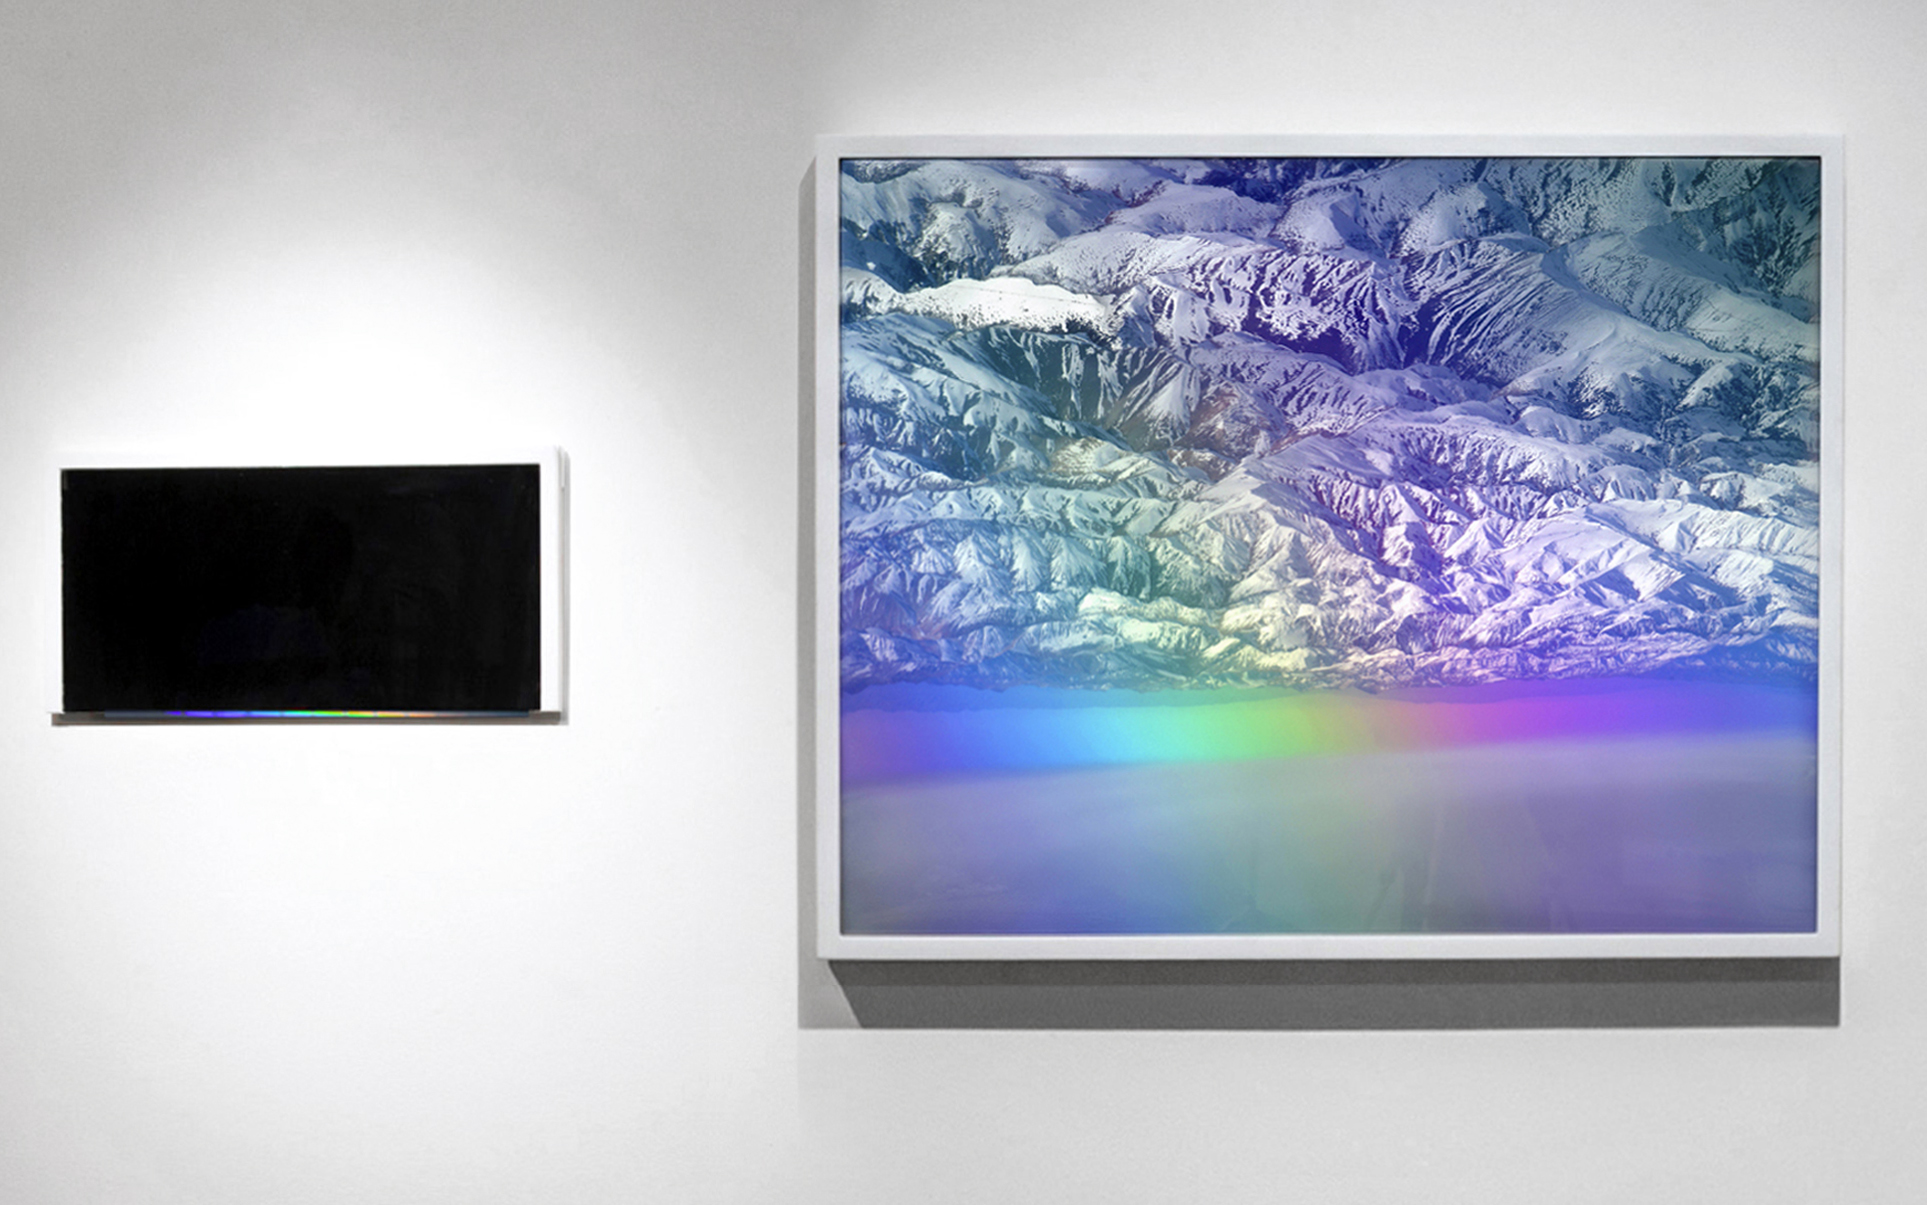 "Horizon , 35"" x 40"" and 9"" x 18"", Framed inkjet photograph, cut beveled mirror, light, reflection (spotlight creates a prism on the mirror bevel), 2012. Collaboration with Carlos Vela Prado"